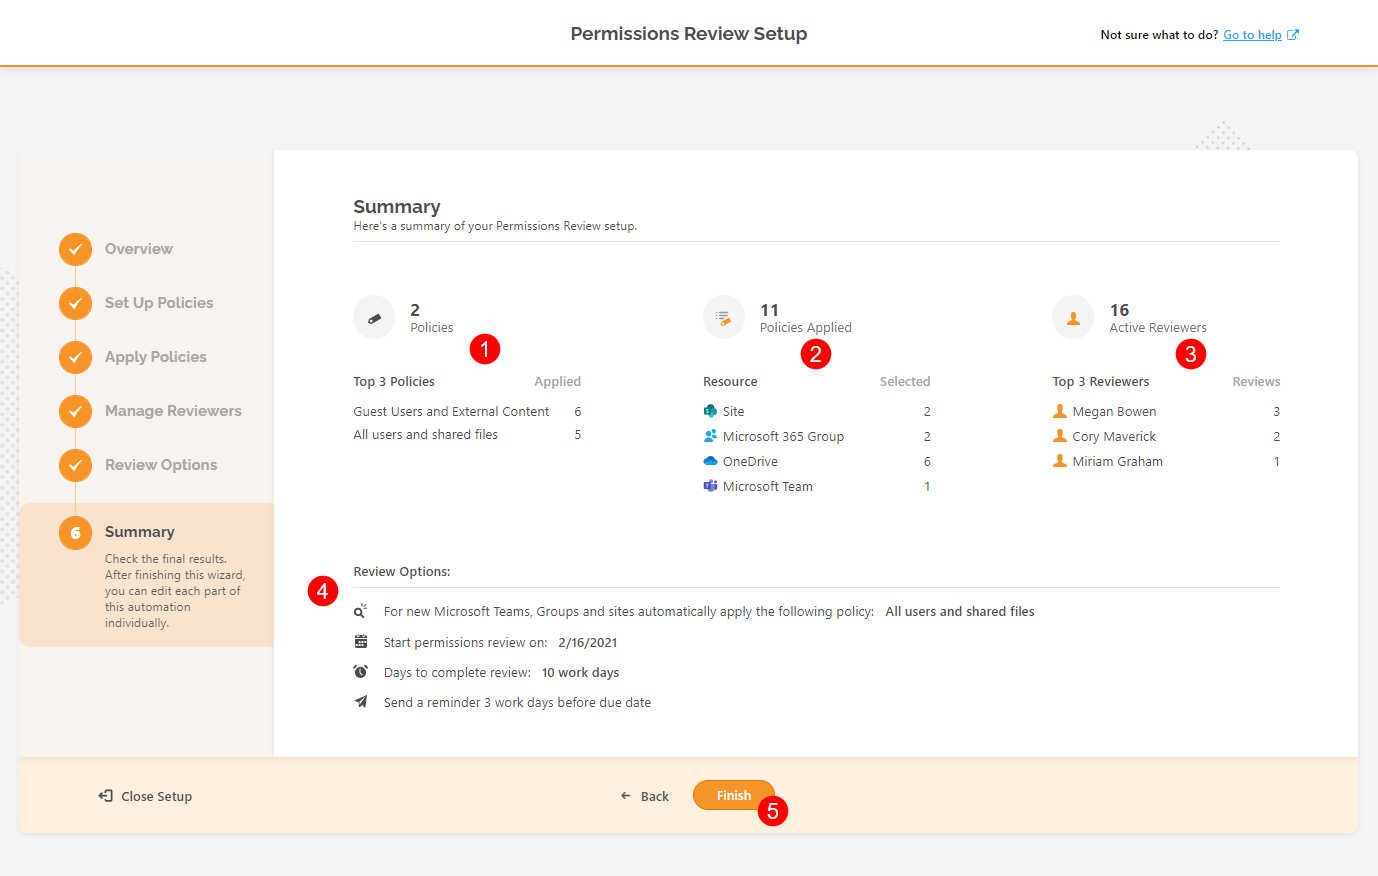 Automated Permissions Review Setup - Summary